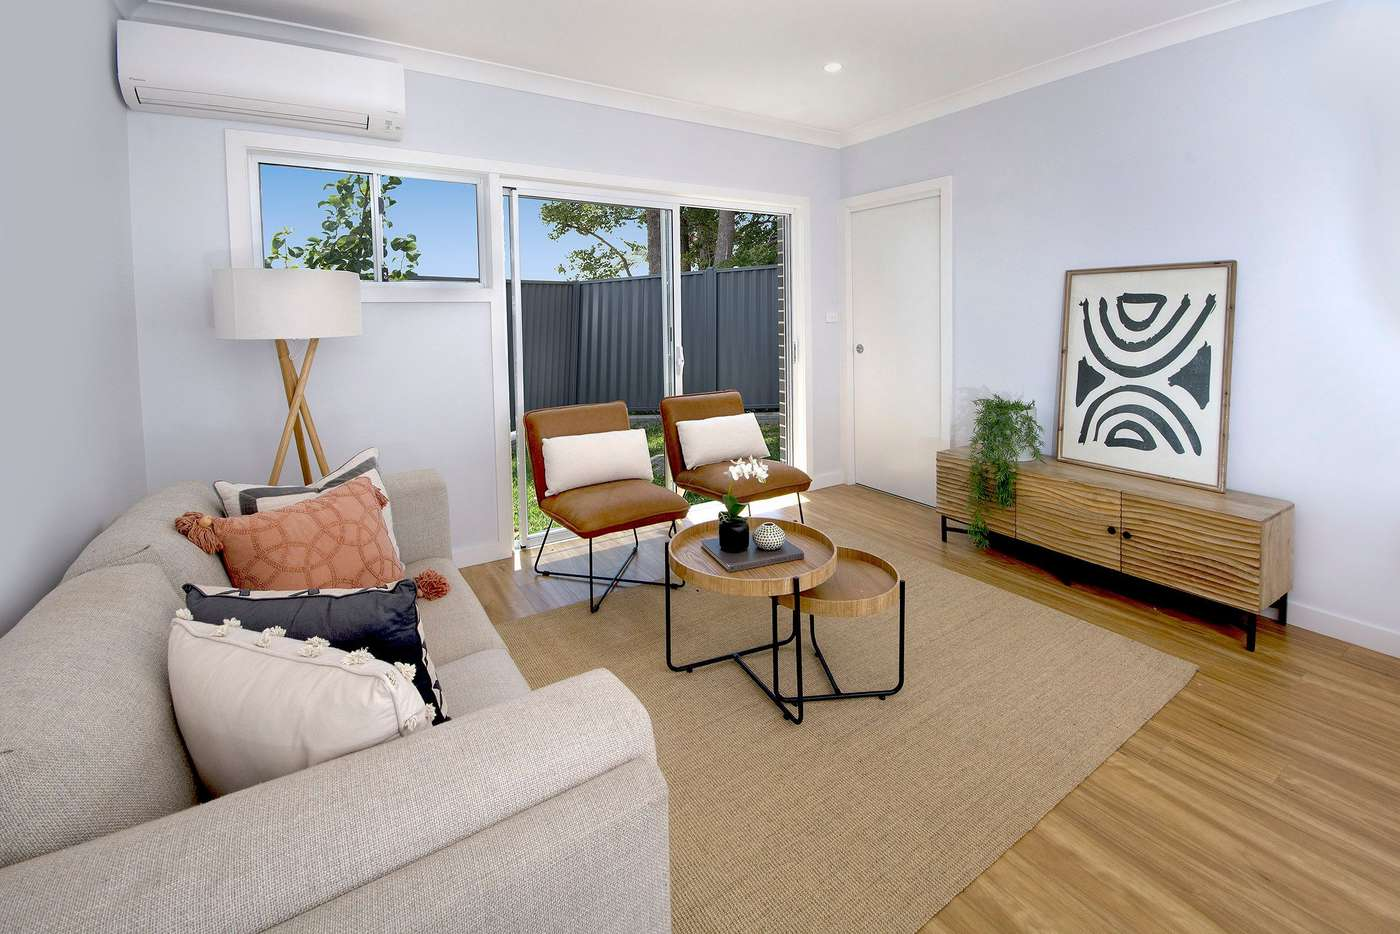 Seventh view of Homely townhouse listing, 1-5 288 - 290 Newcastle Road, North Lambton NSW 2299